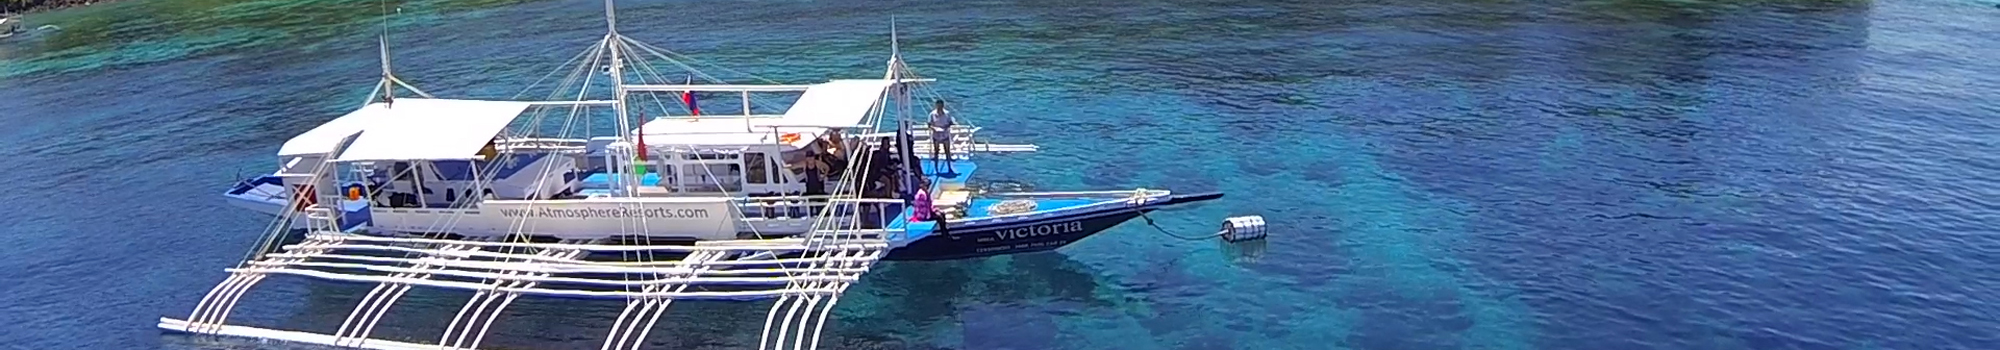 Atmosphere's dive team, boat crew and dive support team in the dive center will make your dive holiday in the Philippines the best holiday ever.